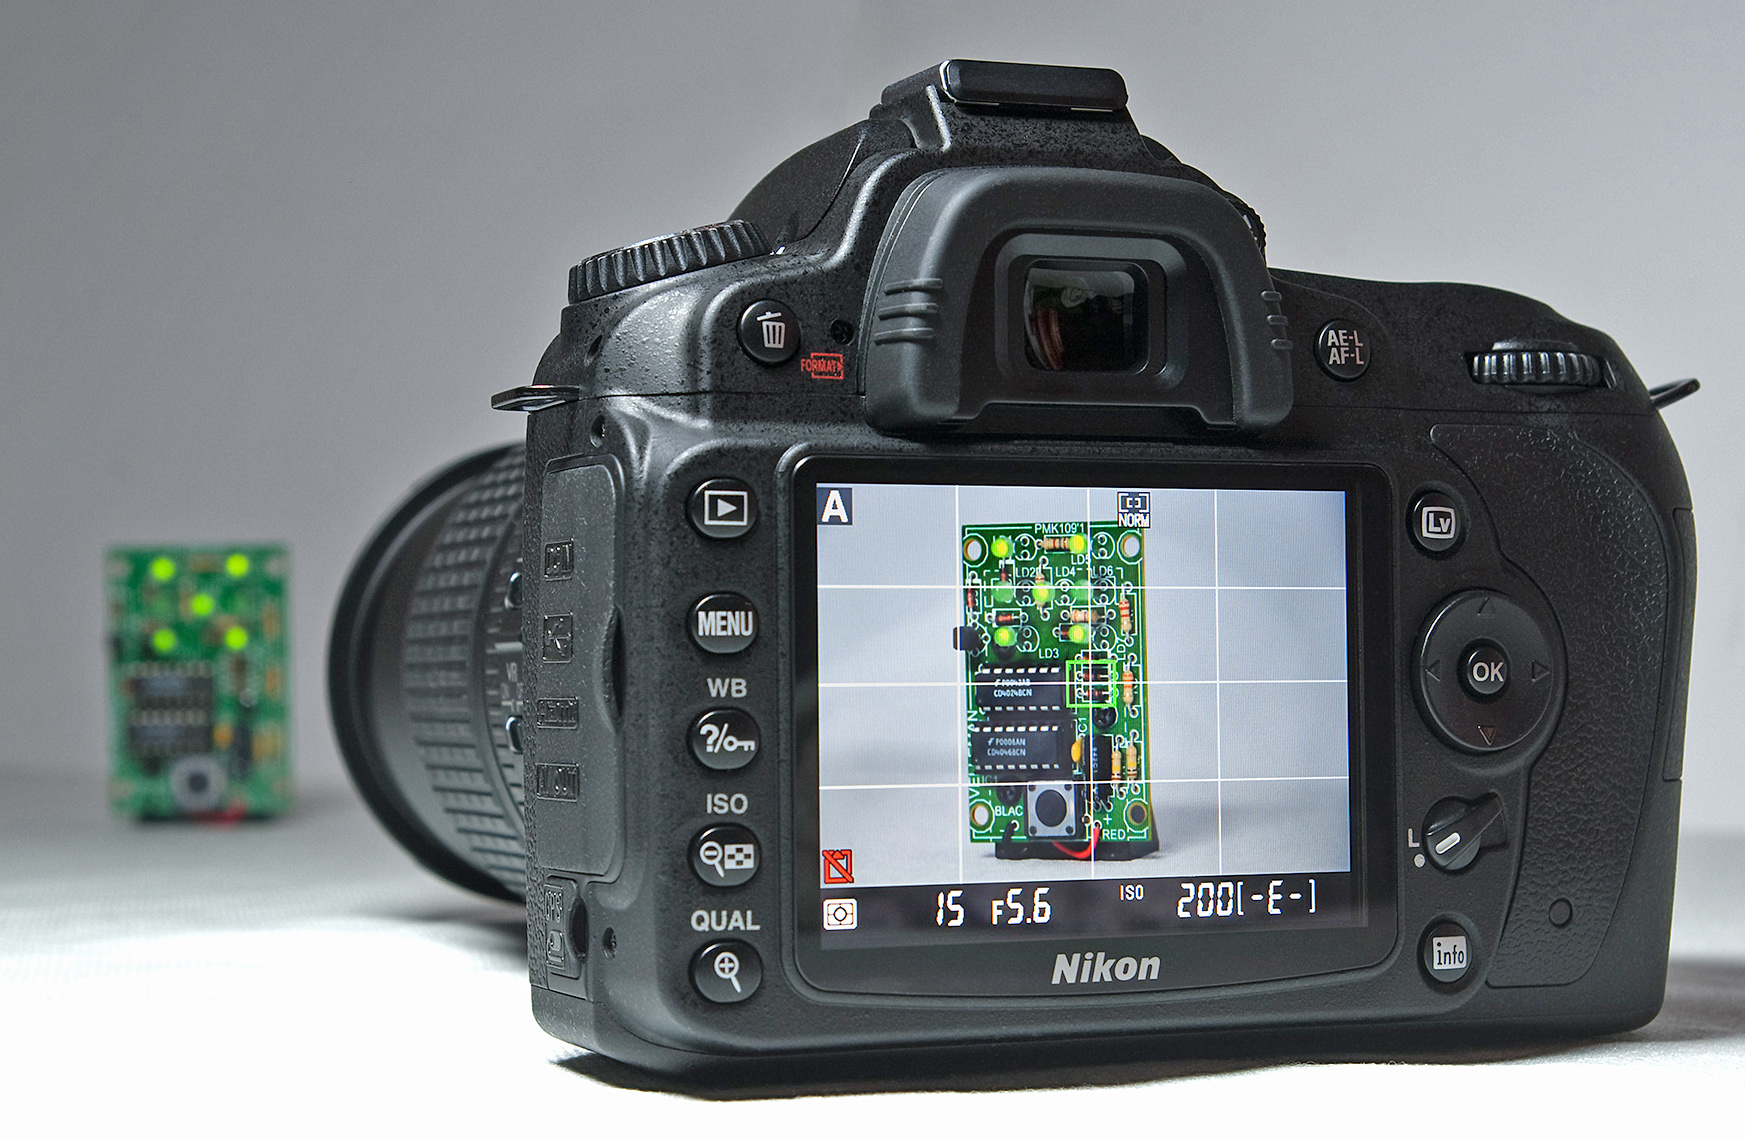 A camera in Live View, Image from Wikimedia